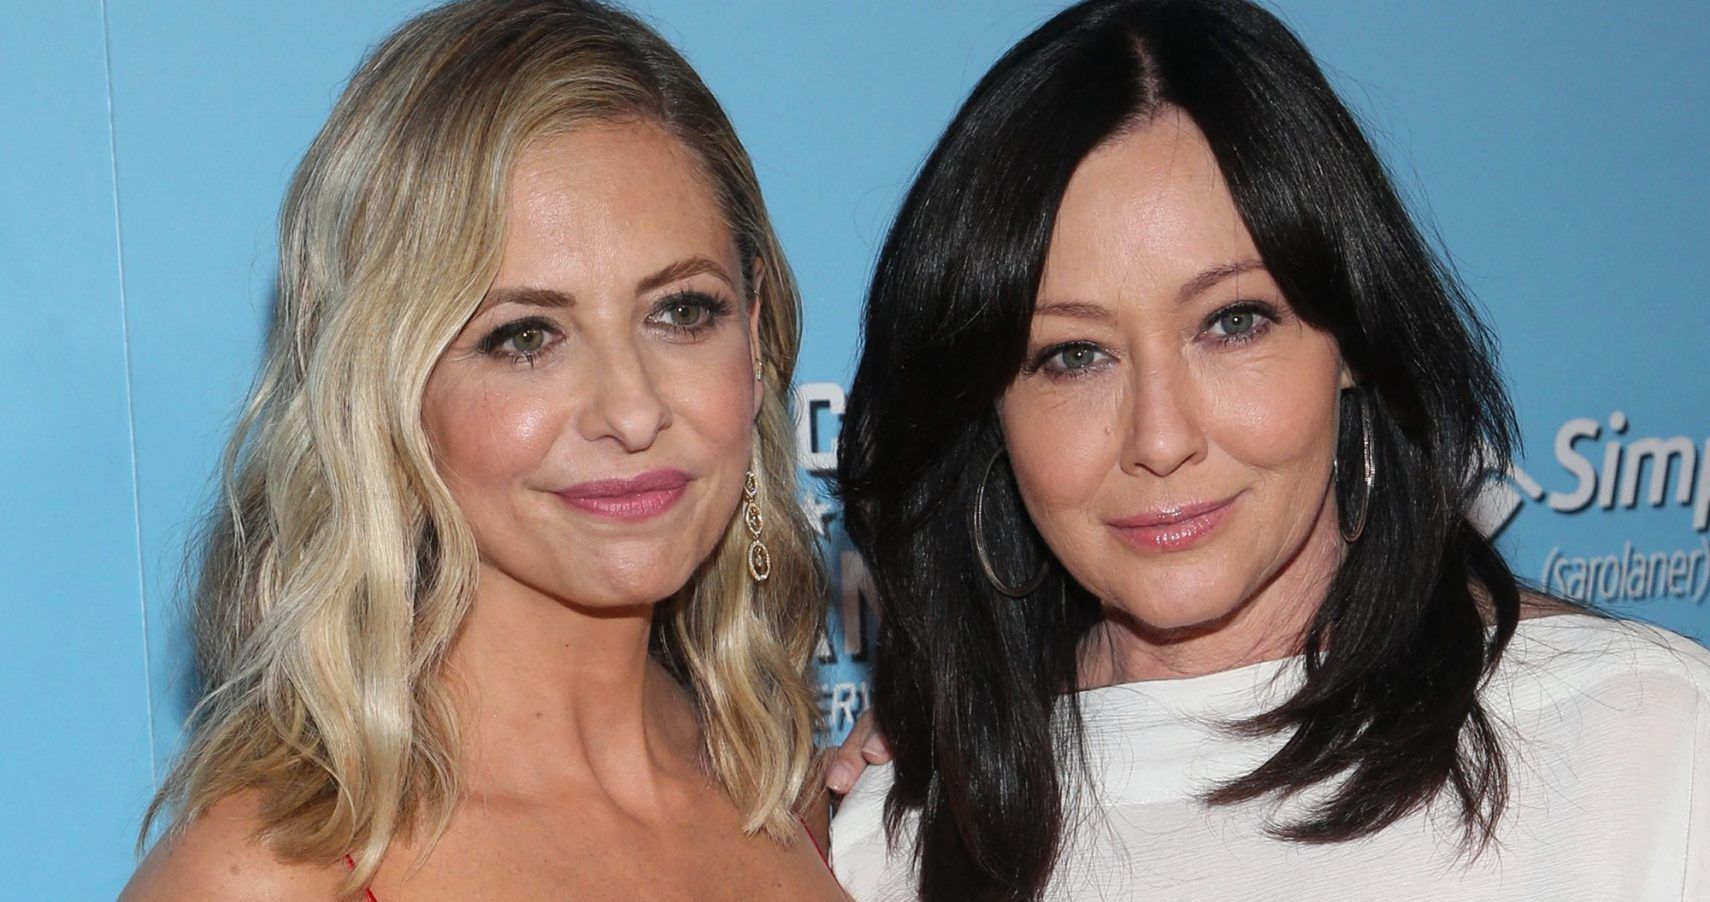 Sarah Michelle Gellar & Shannen Doherty Hilariously Try To Ride Inflatable Bull... And Fail